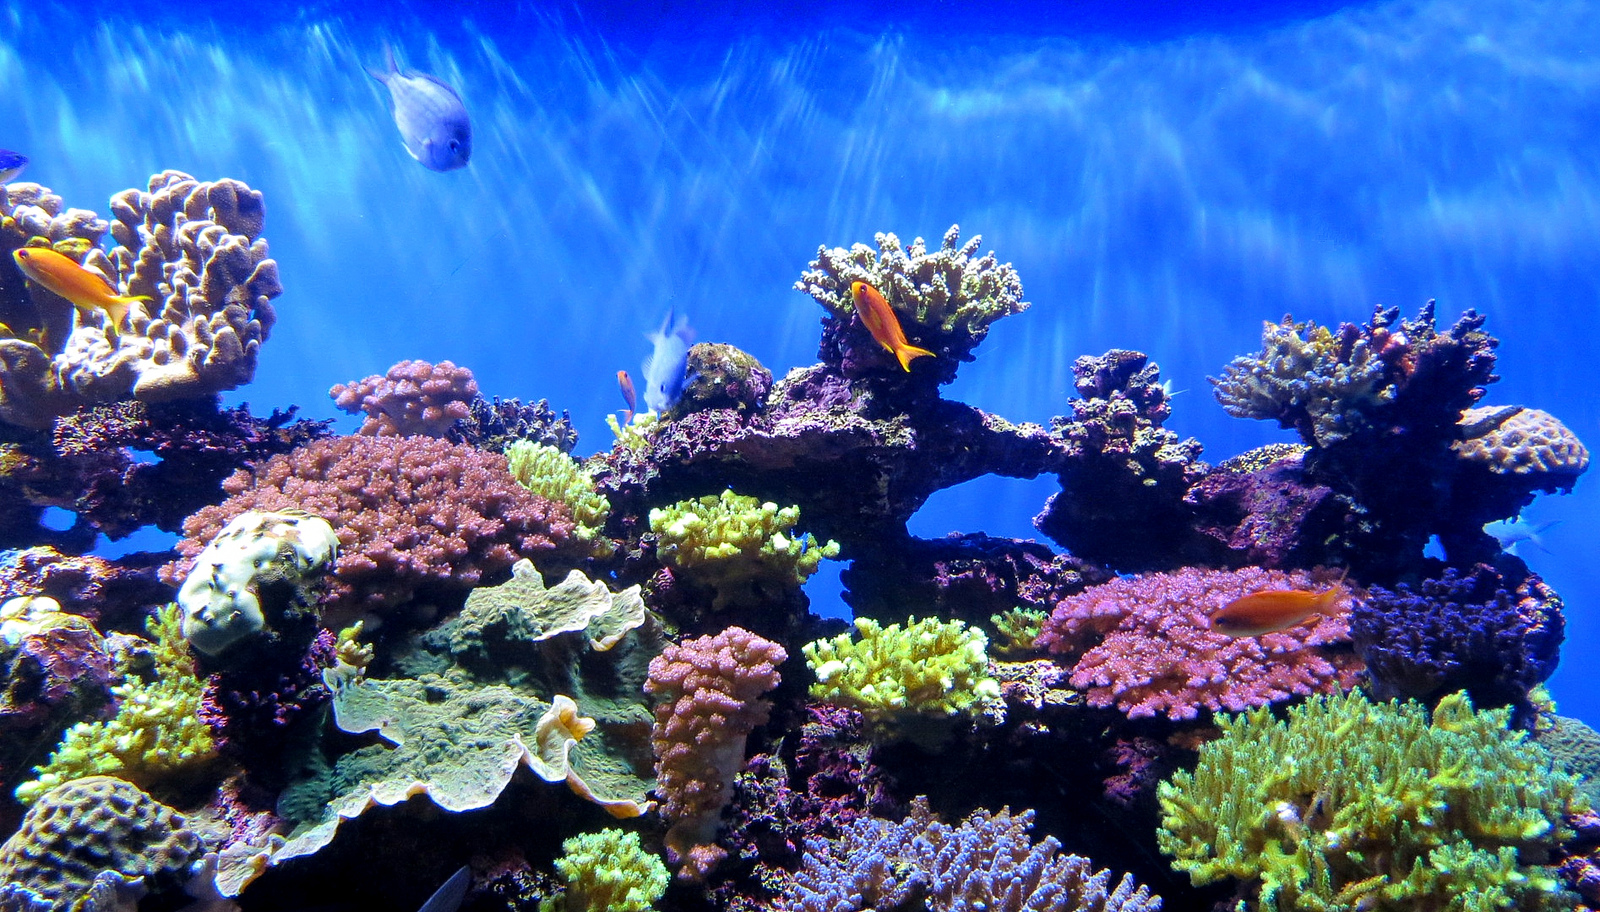 Image: A Coral Reef with its fishy residents